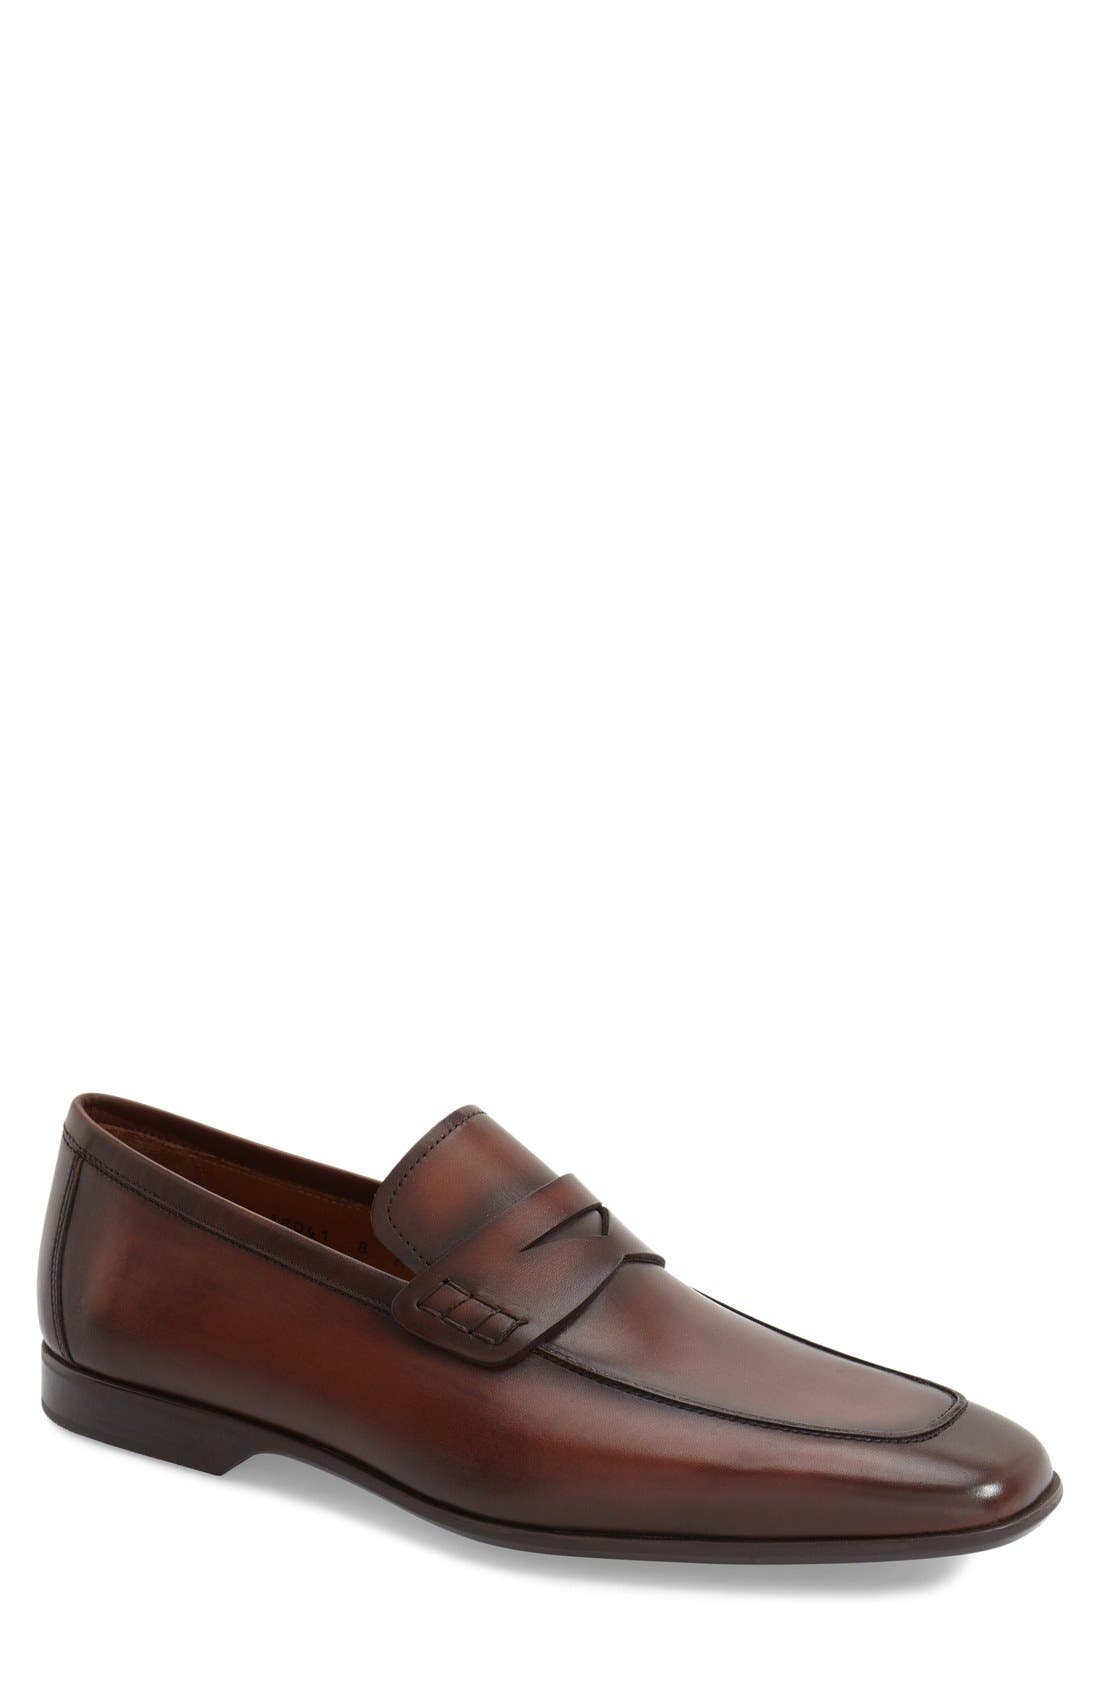 Alternate Image 1 Selected - Magnanni 'Ramiro II' Penny Loafer (Men)